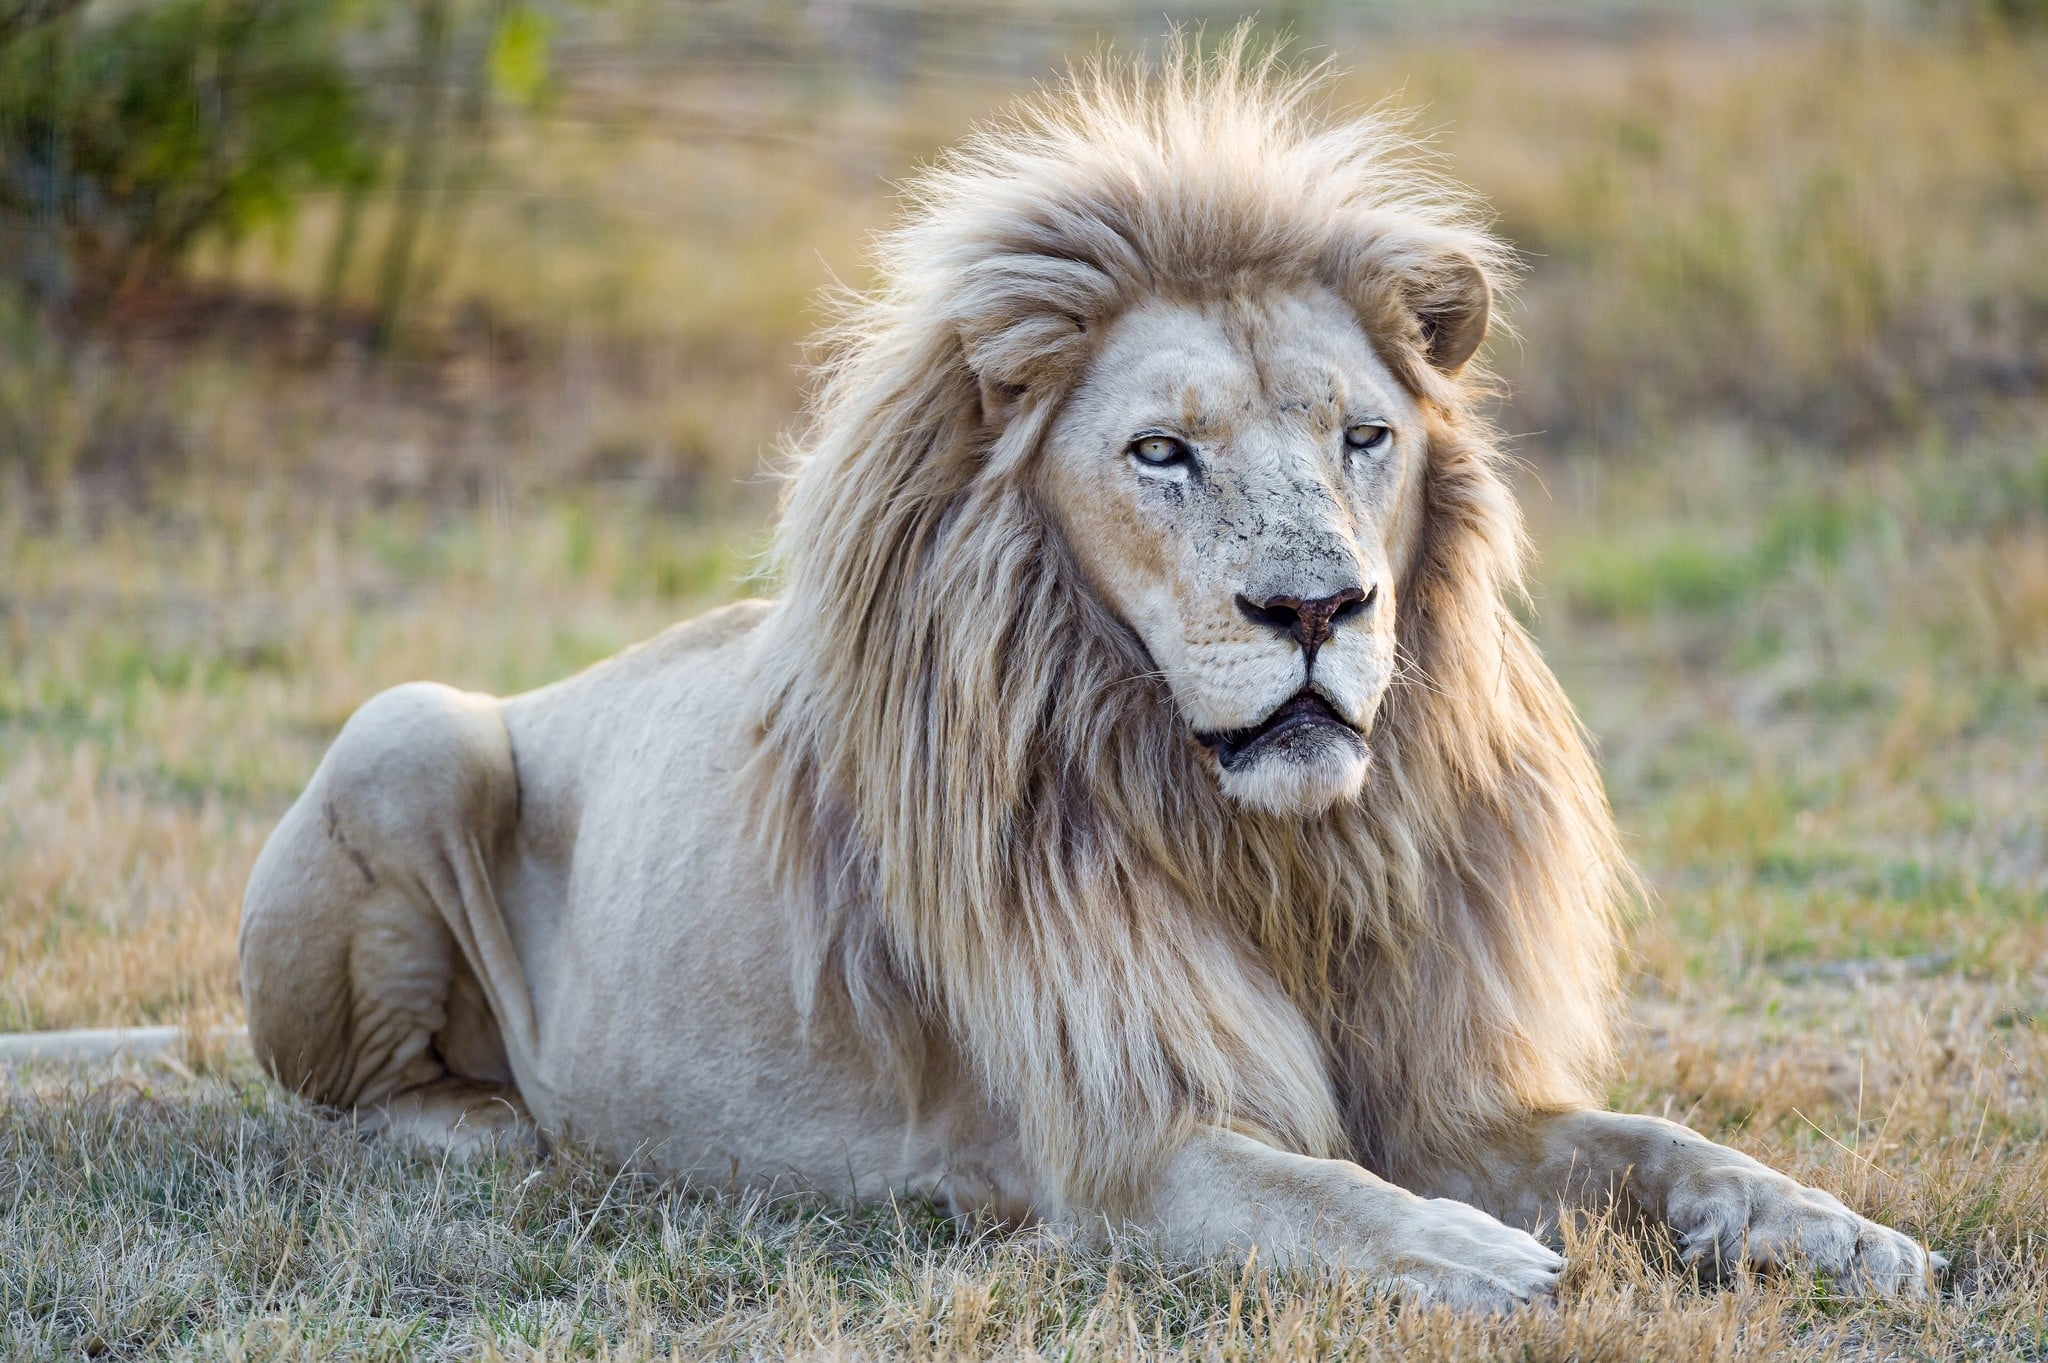 53 Majestic Lion Photos  Pexels  Free Stock Photos